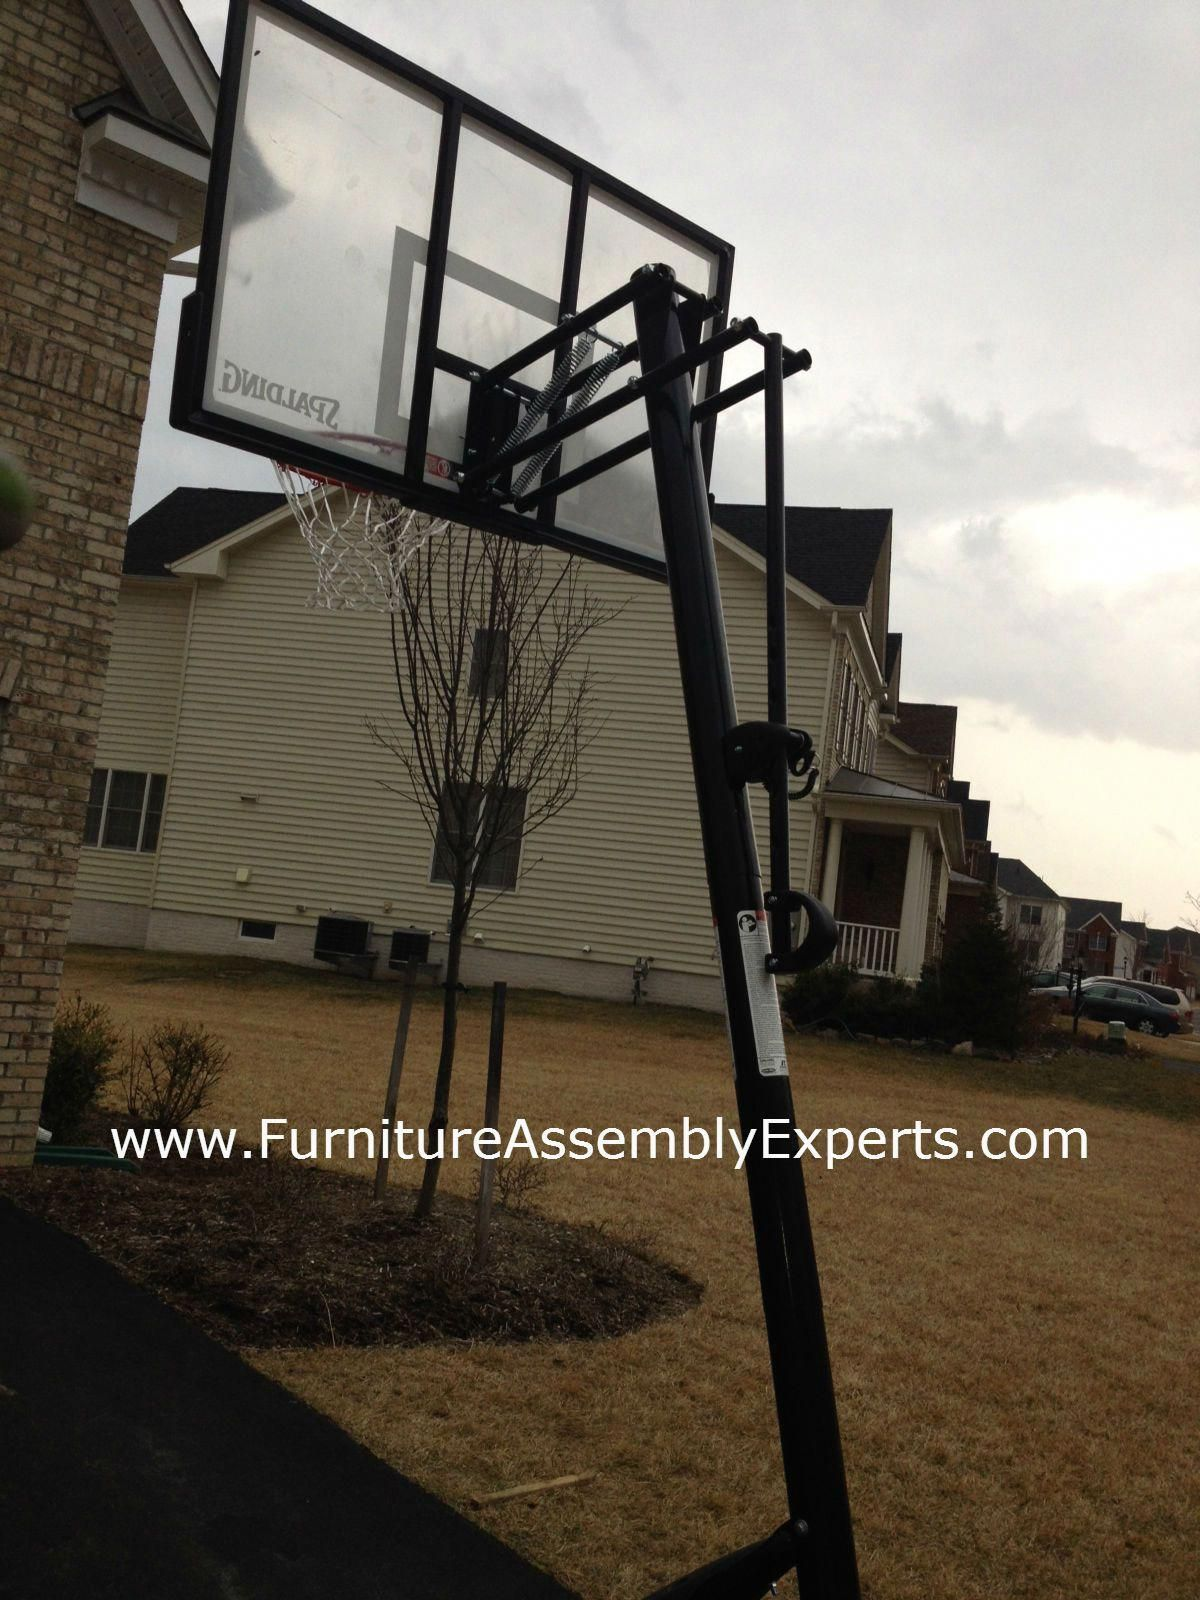 Lifetime Portable Basketball Hoop Assembled In Leesburg Va By Furniture Assembly Experts L Portable Basketball Hoop Lifetime Basketball Hoop Basketball Systems